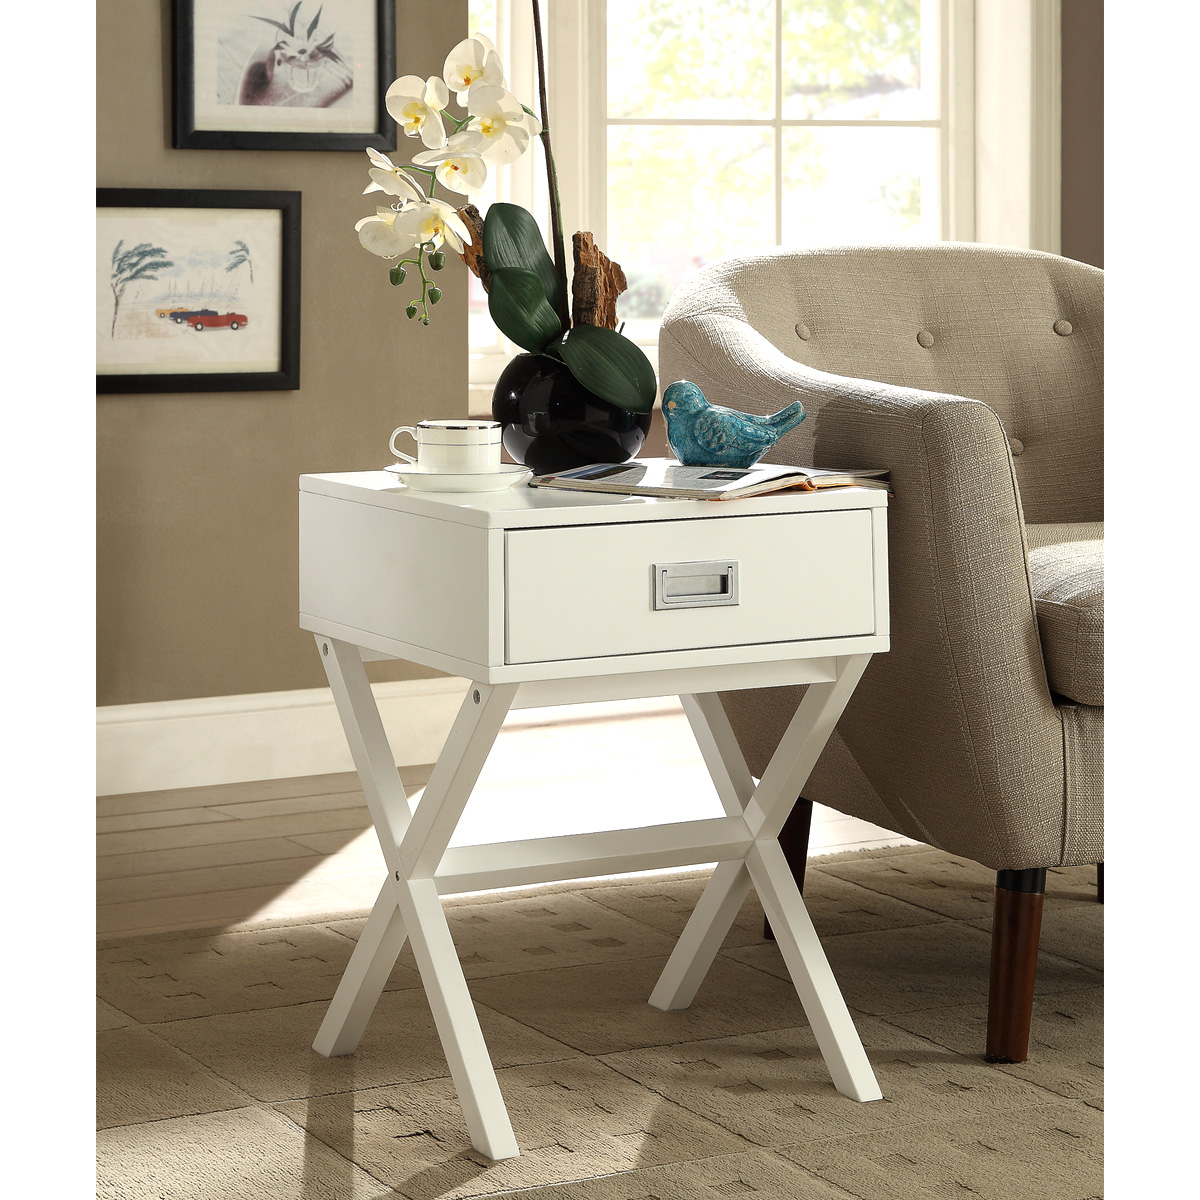 Charles-Bentley-Retro-Side-Table-Bedside-Table-MDF-Bedroom-Furniture-3-Colours thumbnail 3